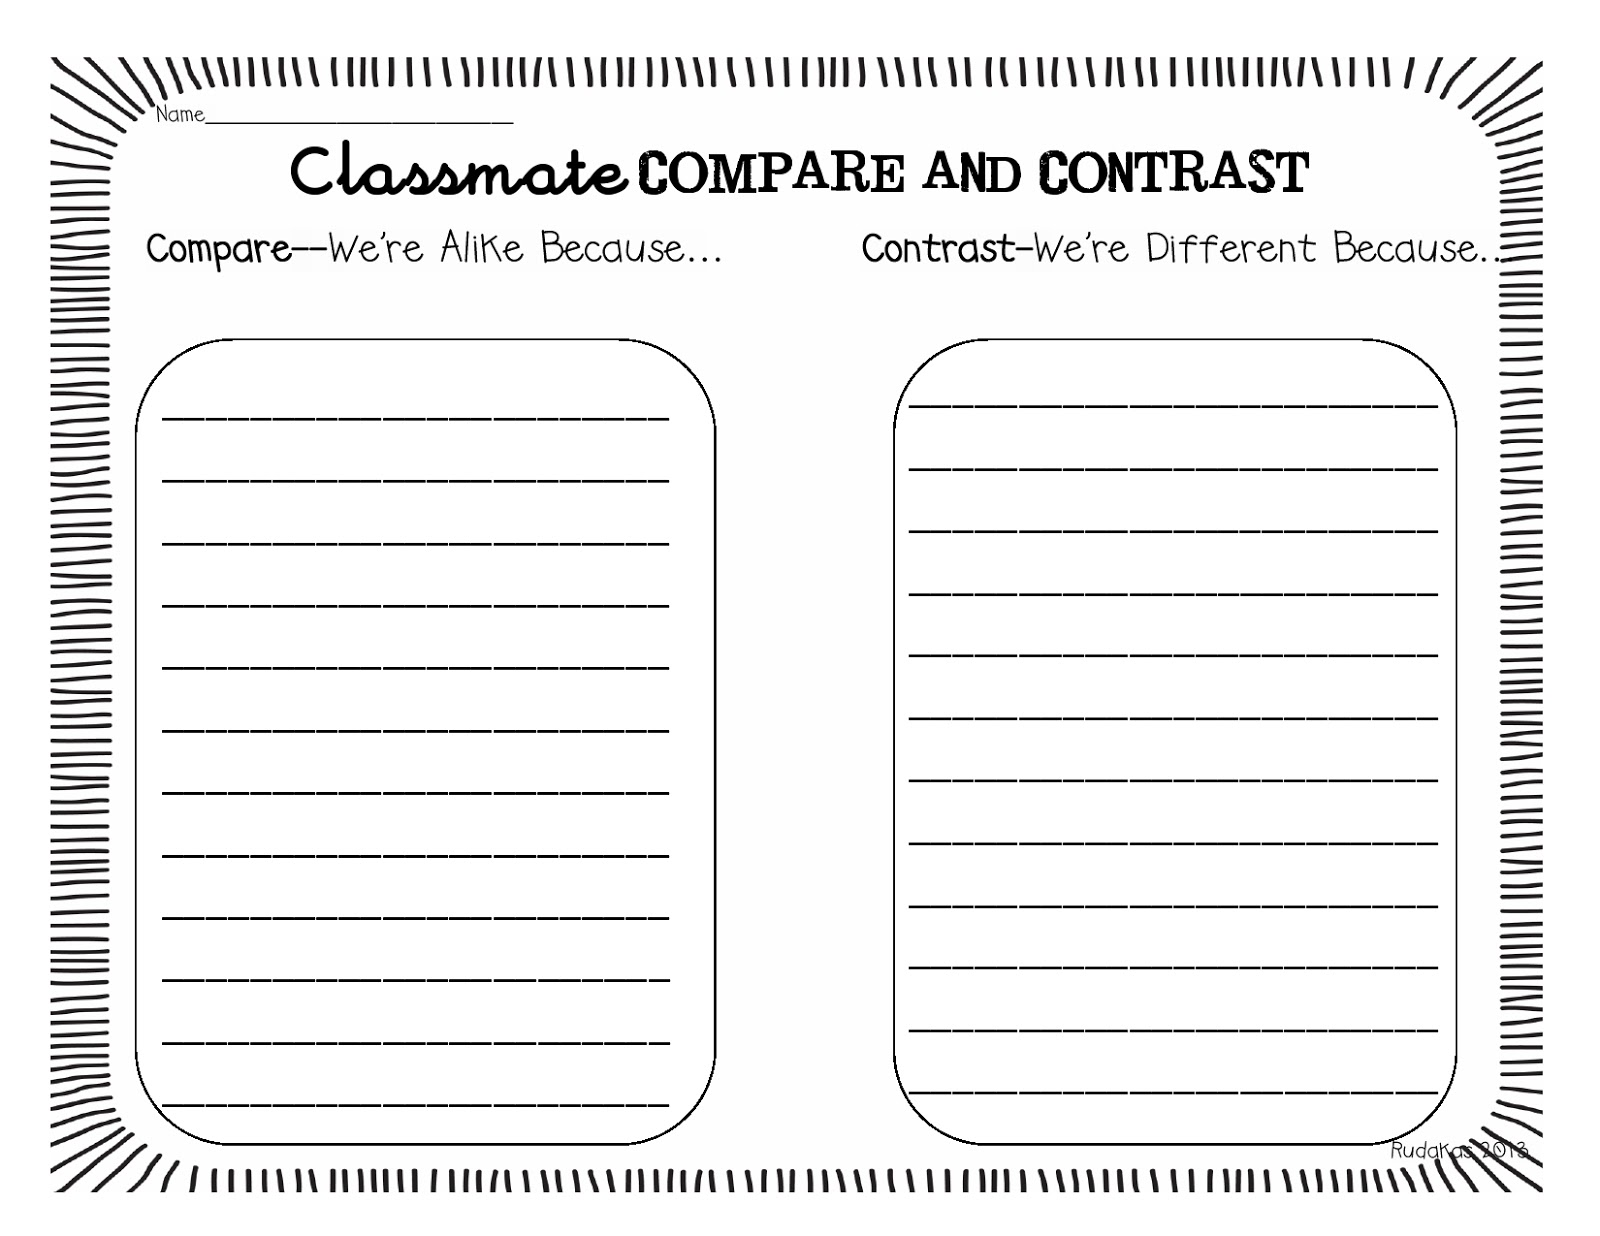 Printables Compare And Contrast Worksheets 4th Grade 1000 images about school on pinterest writing assignments learn more at 2 bp blogspot com